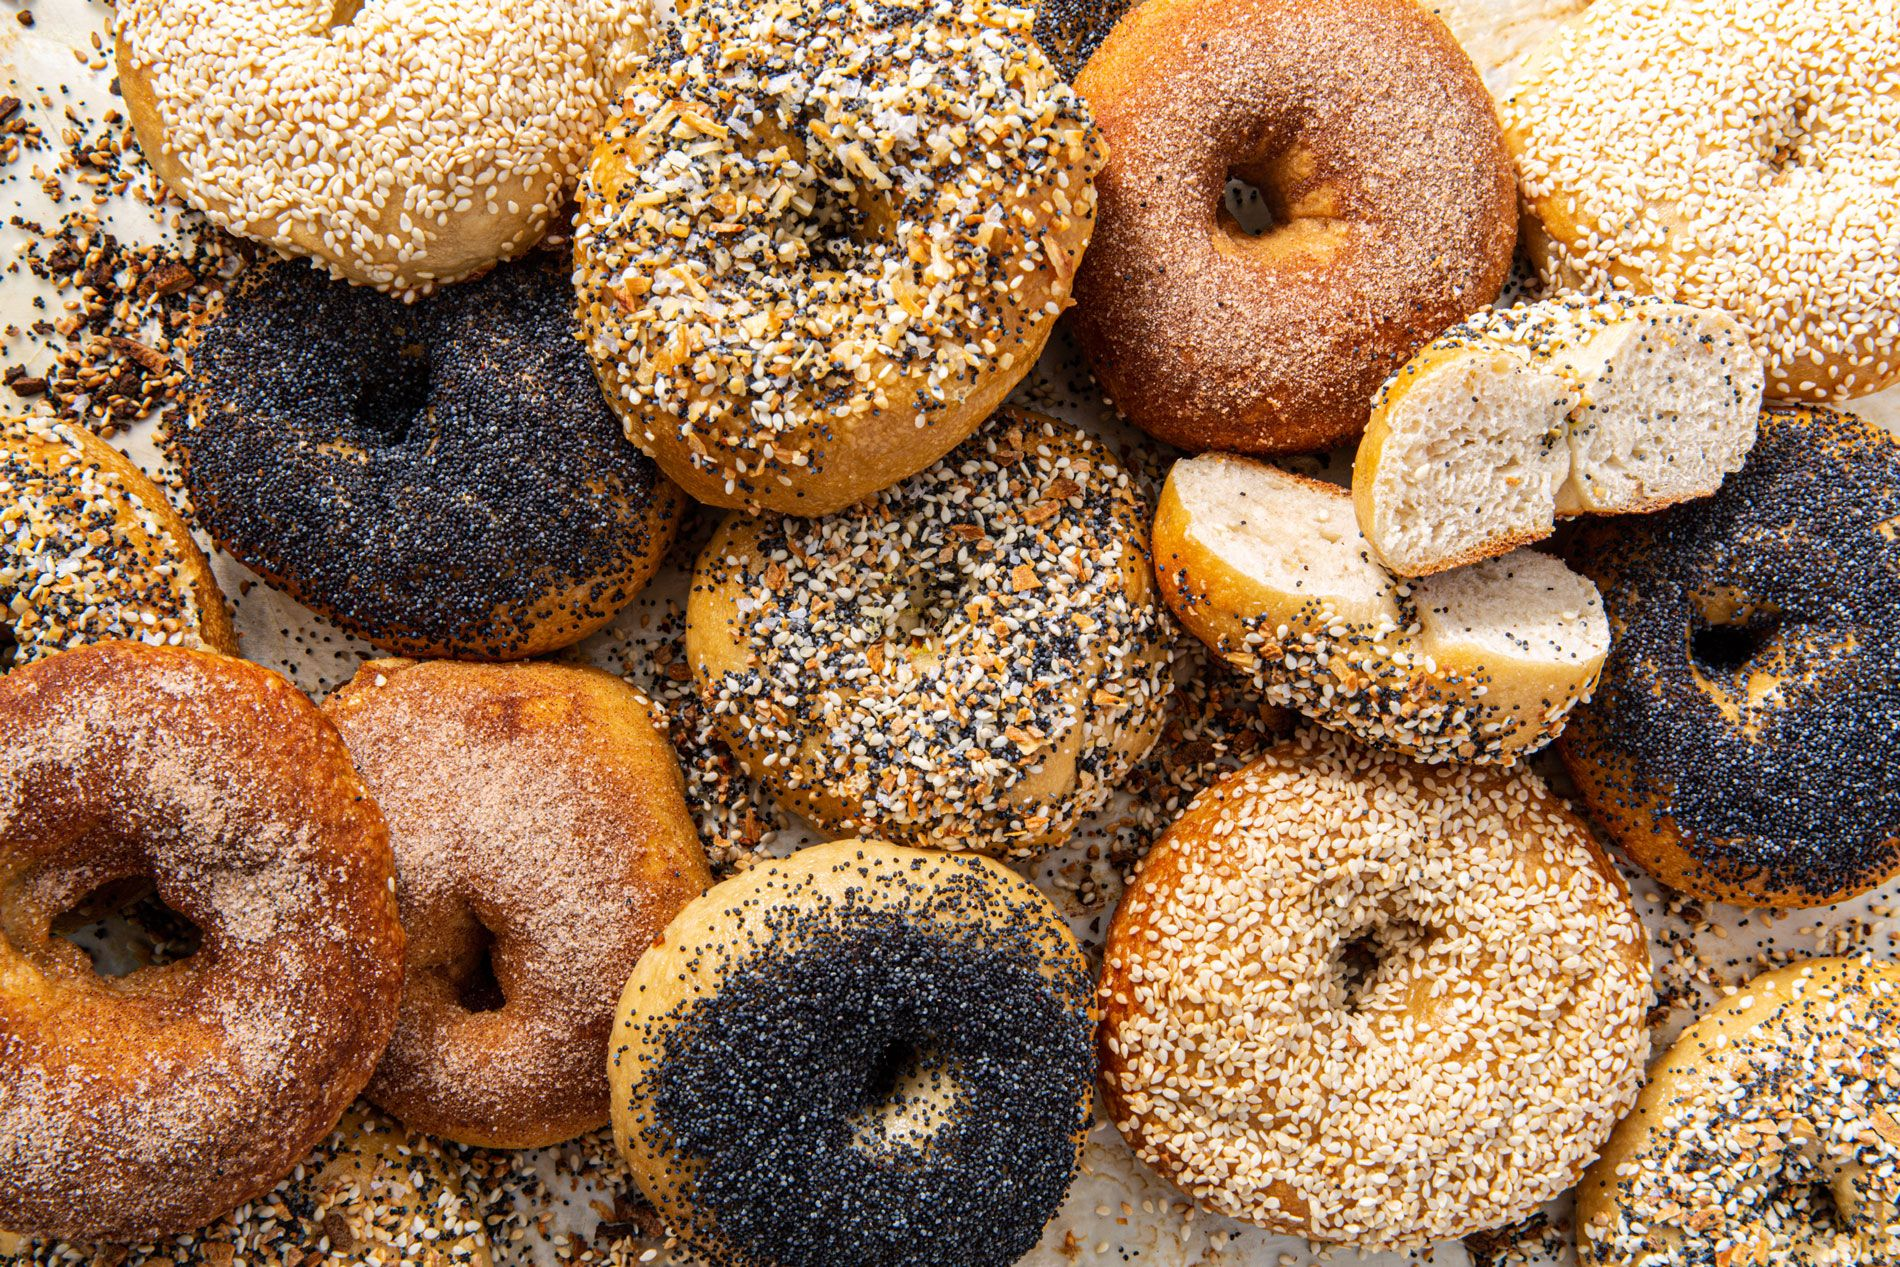 New Jersey Called Itself the 'Bagel Capital Of The World'